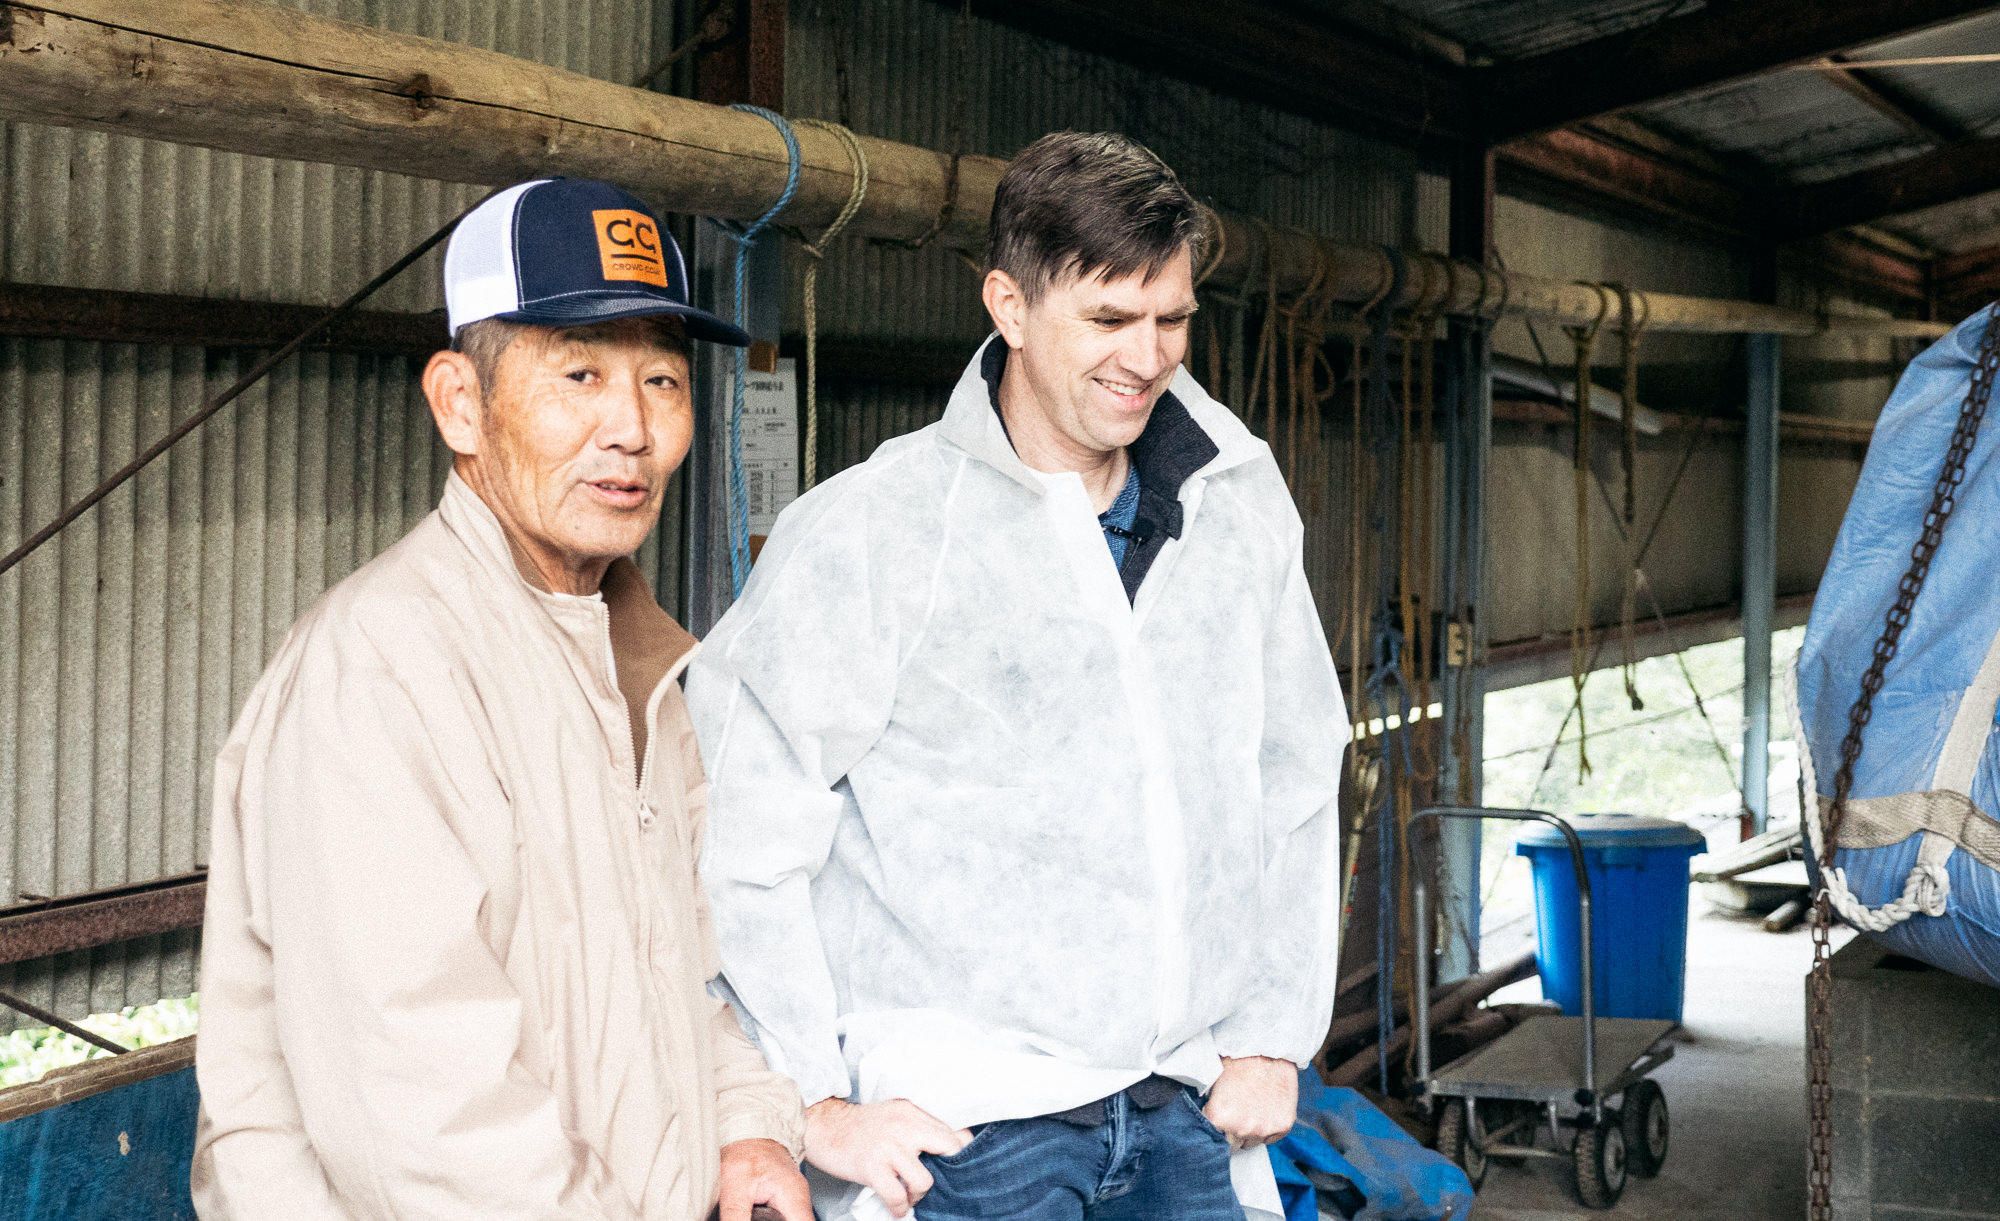 Crowd Cow visits Ishii-san, Olive Beef's inventor